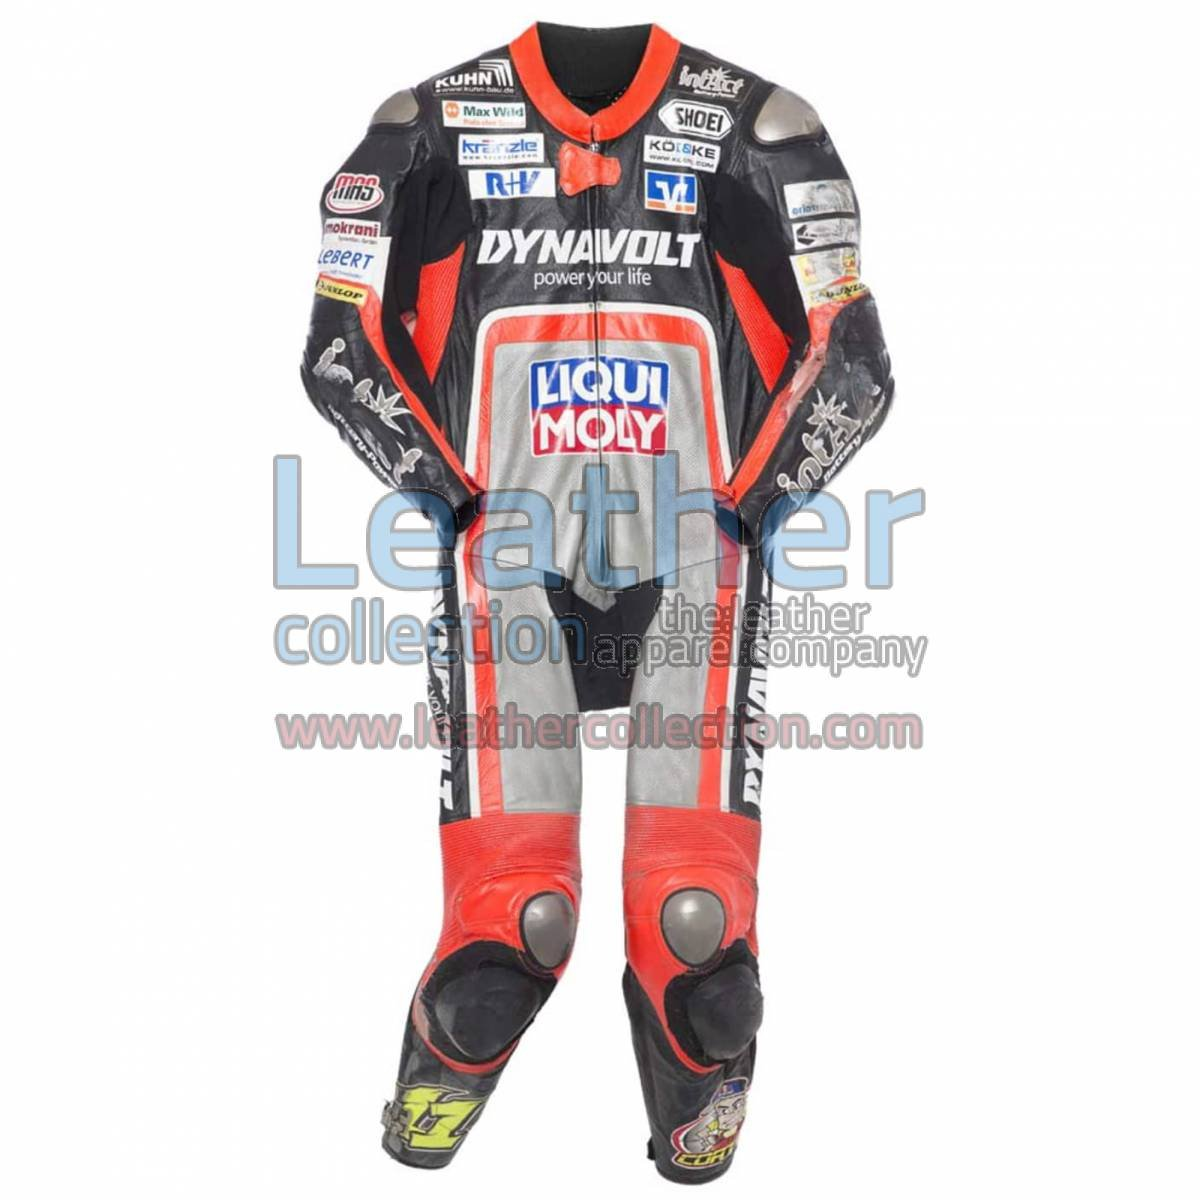 Sandro Cortese 2014 Moto2 Motorbike Leather Suit